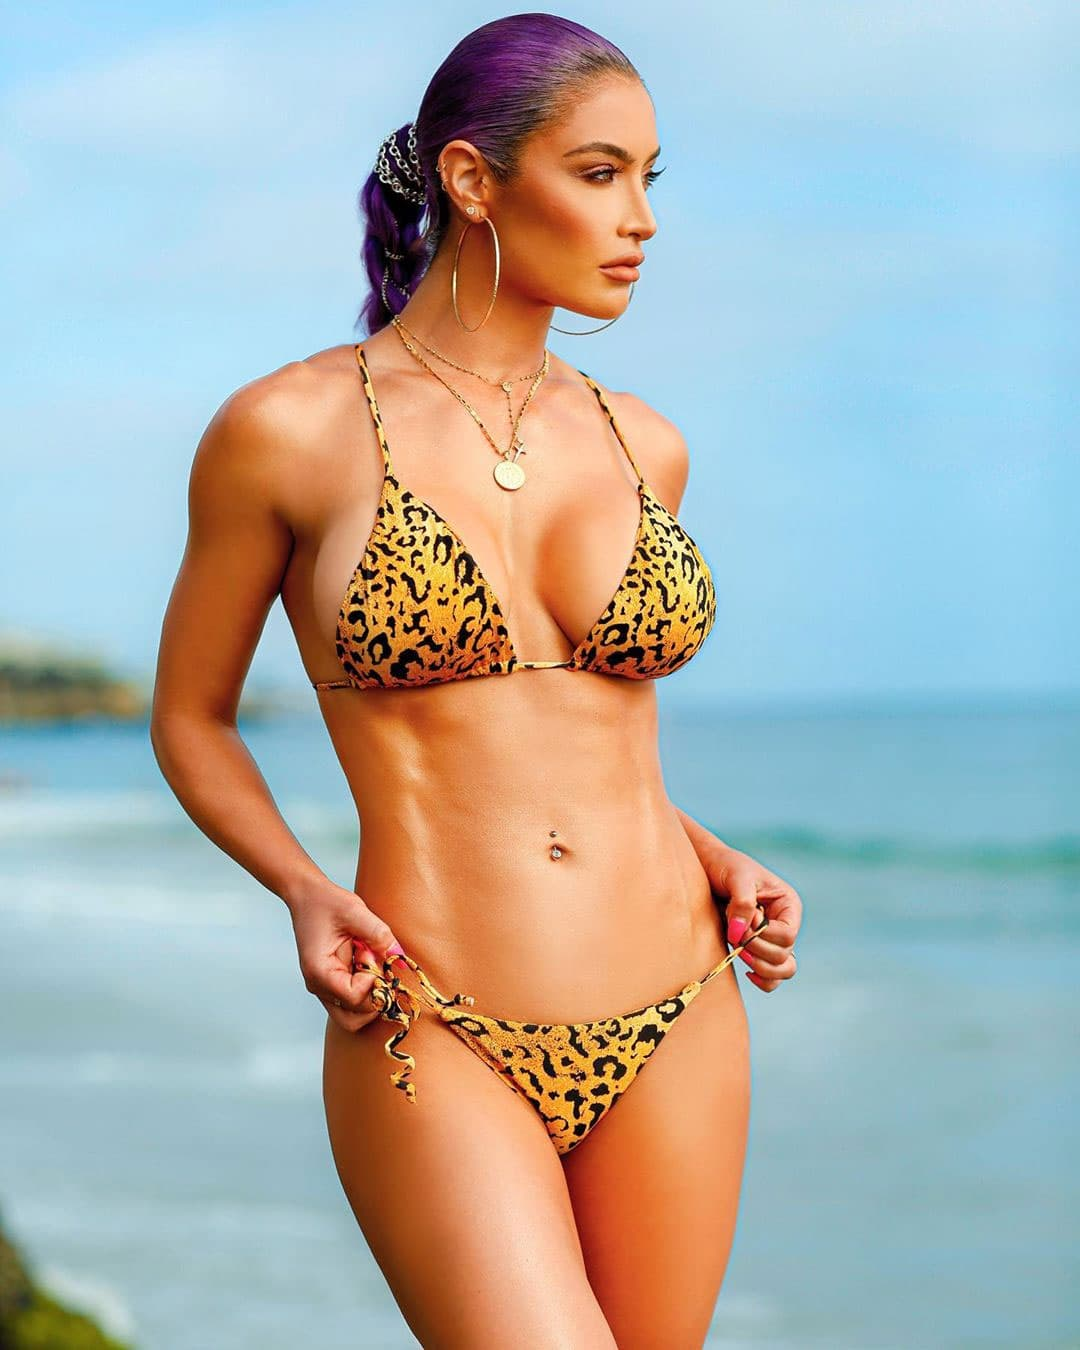 Eva Marie in Animal Print Bikini